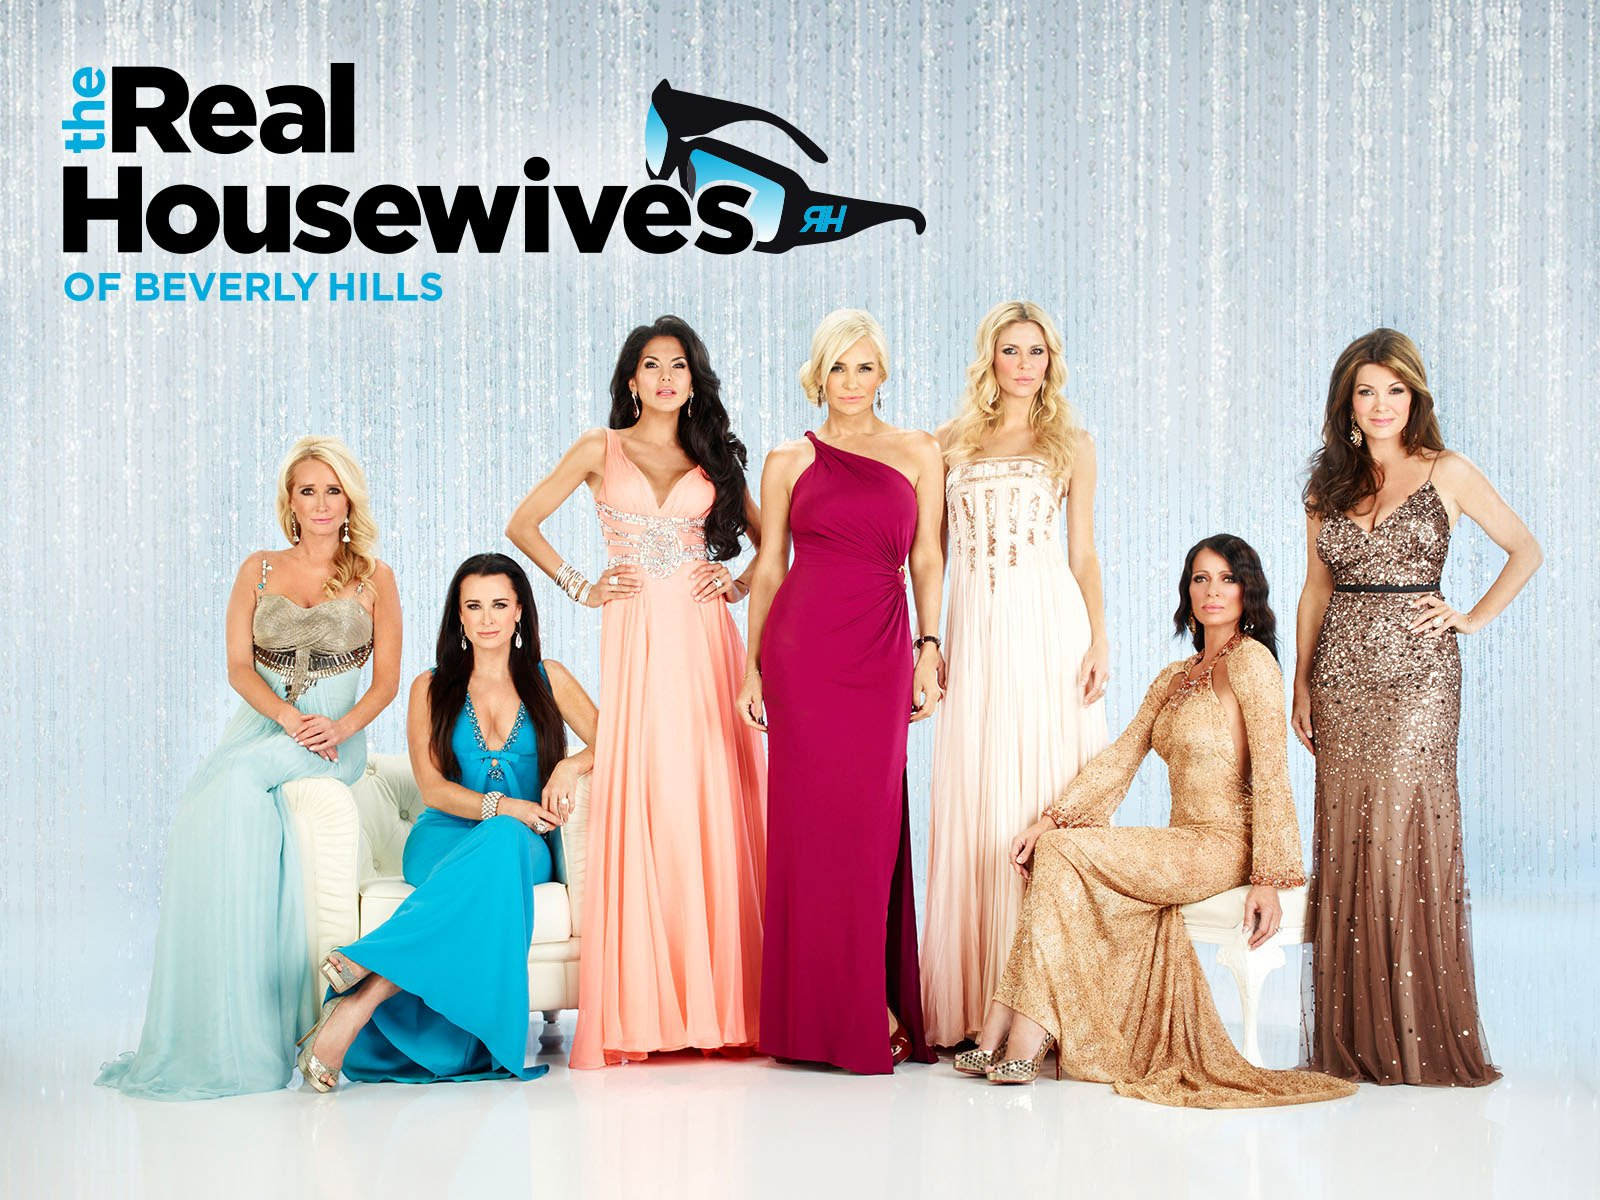 Amazon.co.uk: Watch The Real Housewives of Beverly Hills Season 4 | Prime Video